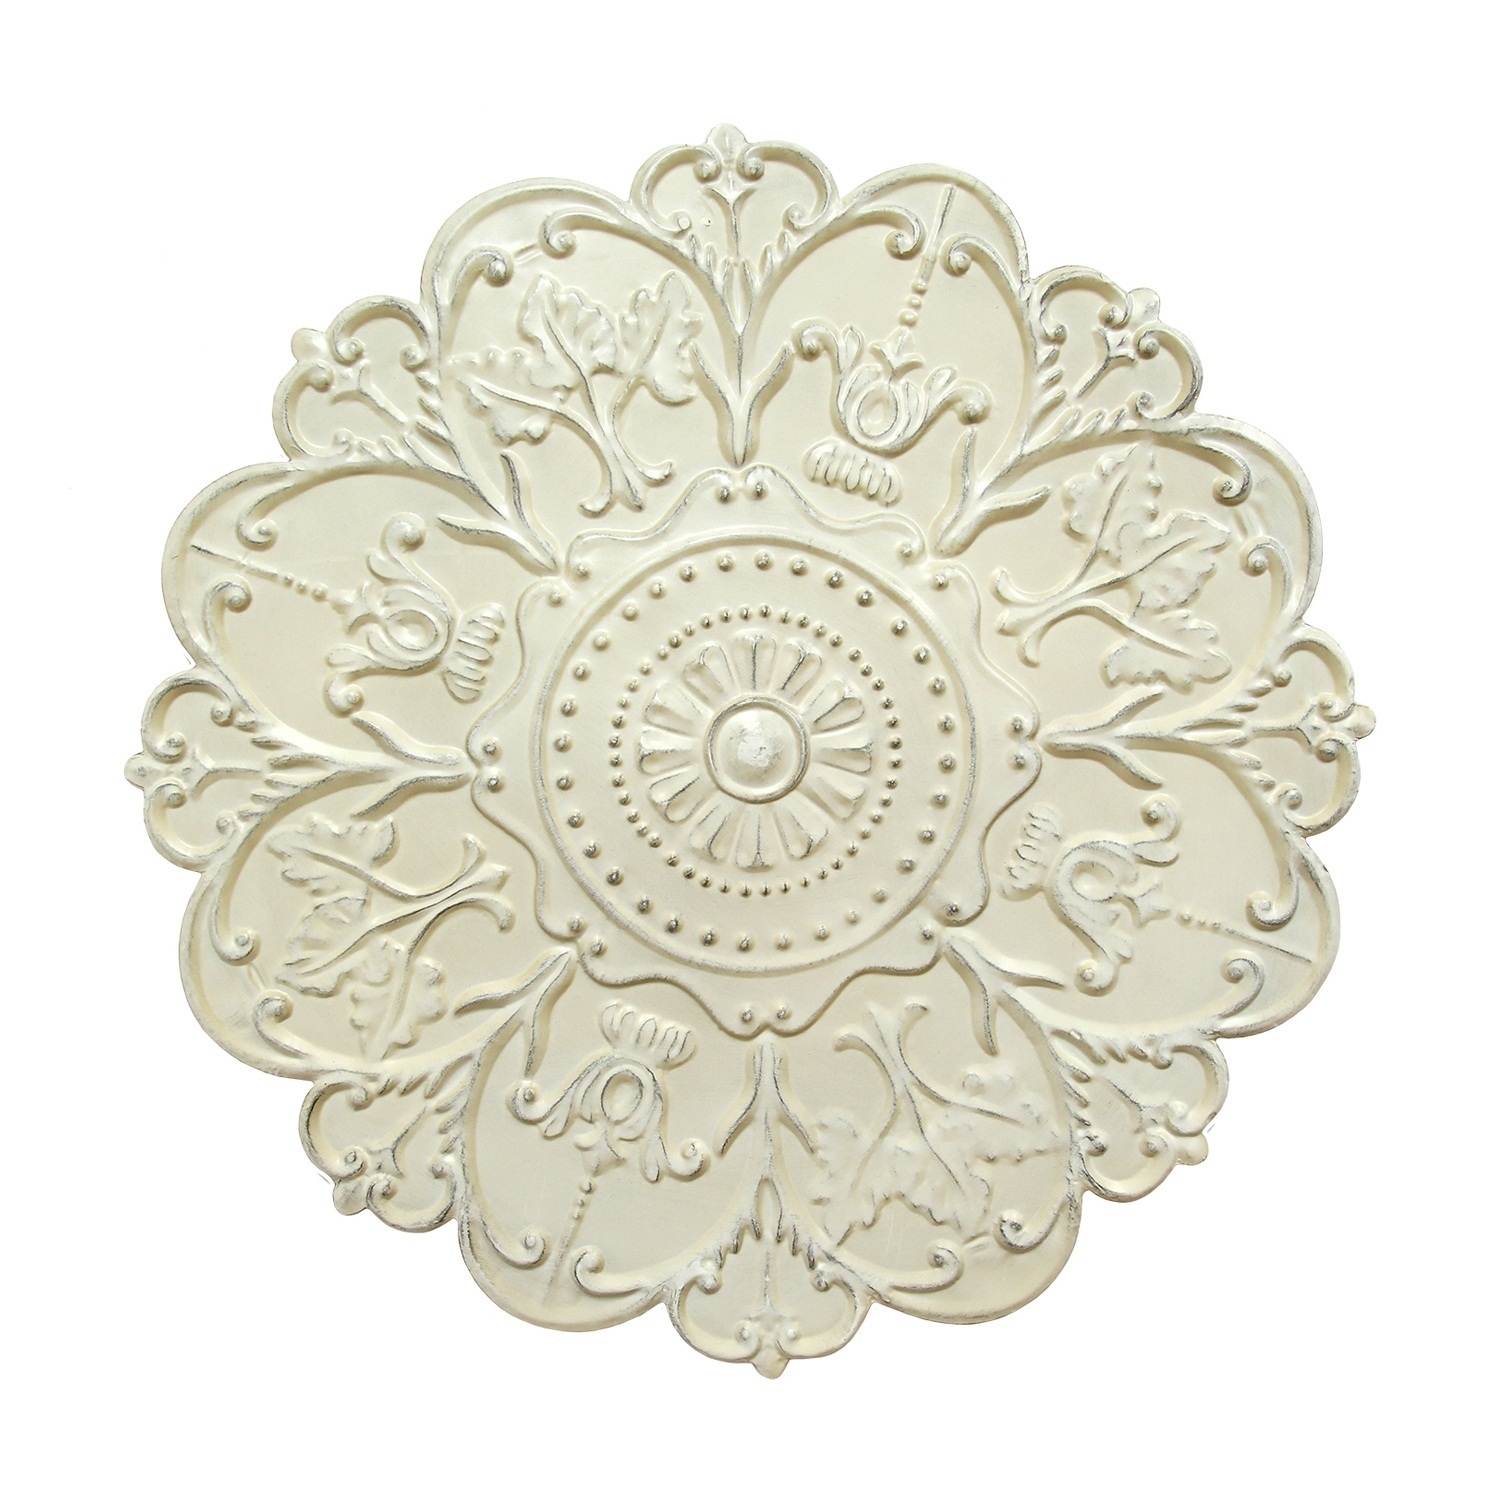 Medallion Wall Art Floral Accent Round Metal Home Decor Shabby White Pertaining To Most Popular Medallion Wall Art (View 9 of 20)